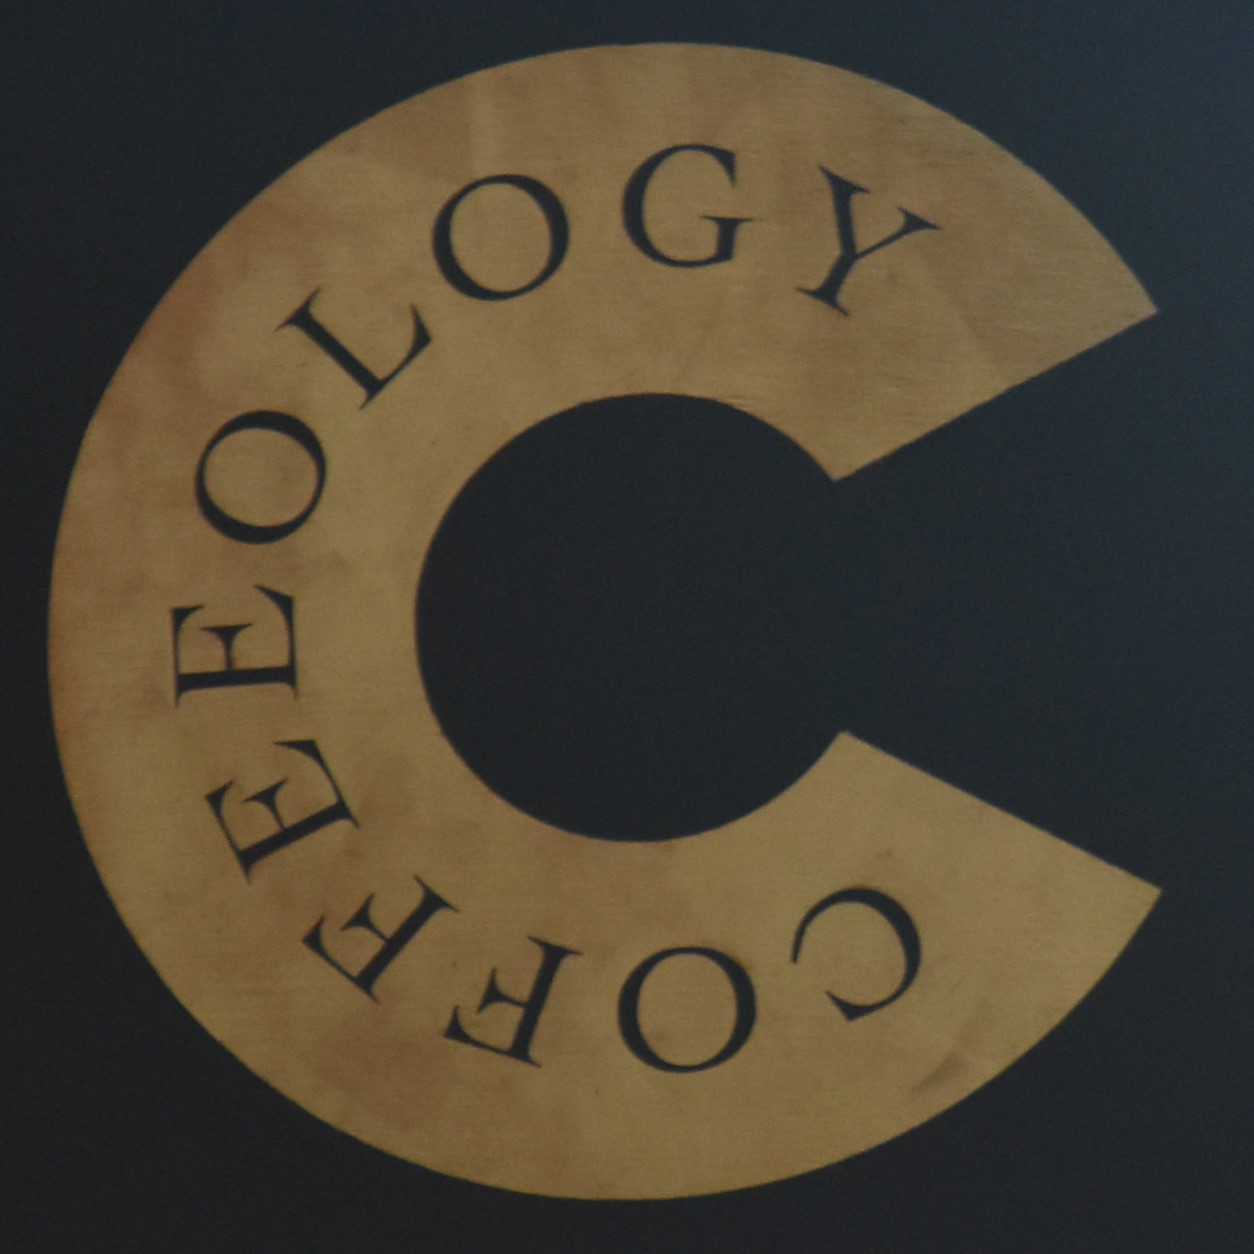 """Details of the Coffeeology logo (a letter C with the word """"Coffeeology"""" written on it) from the sign hanging outside the original coffee shop in Richmond."""